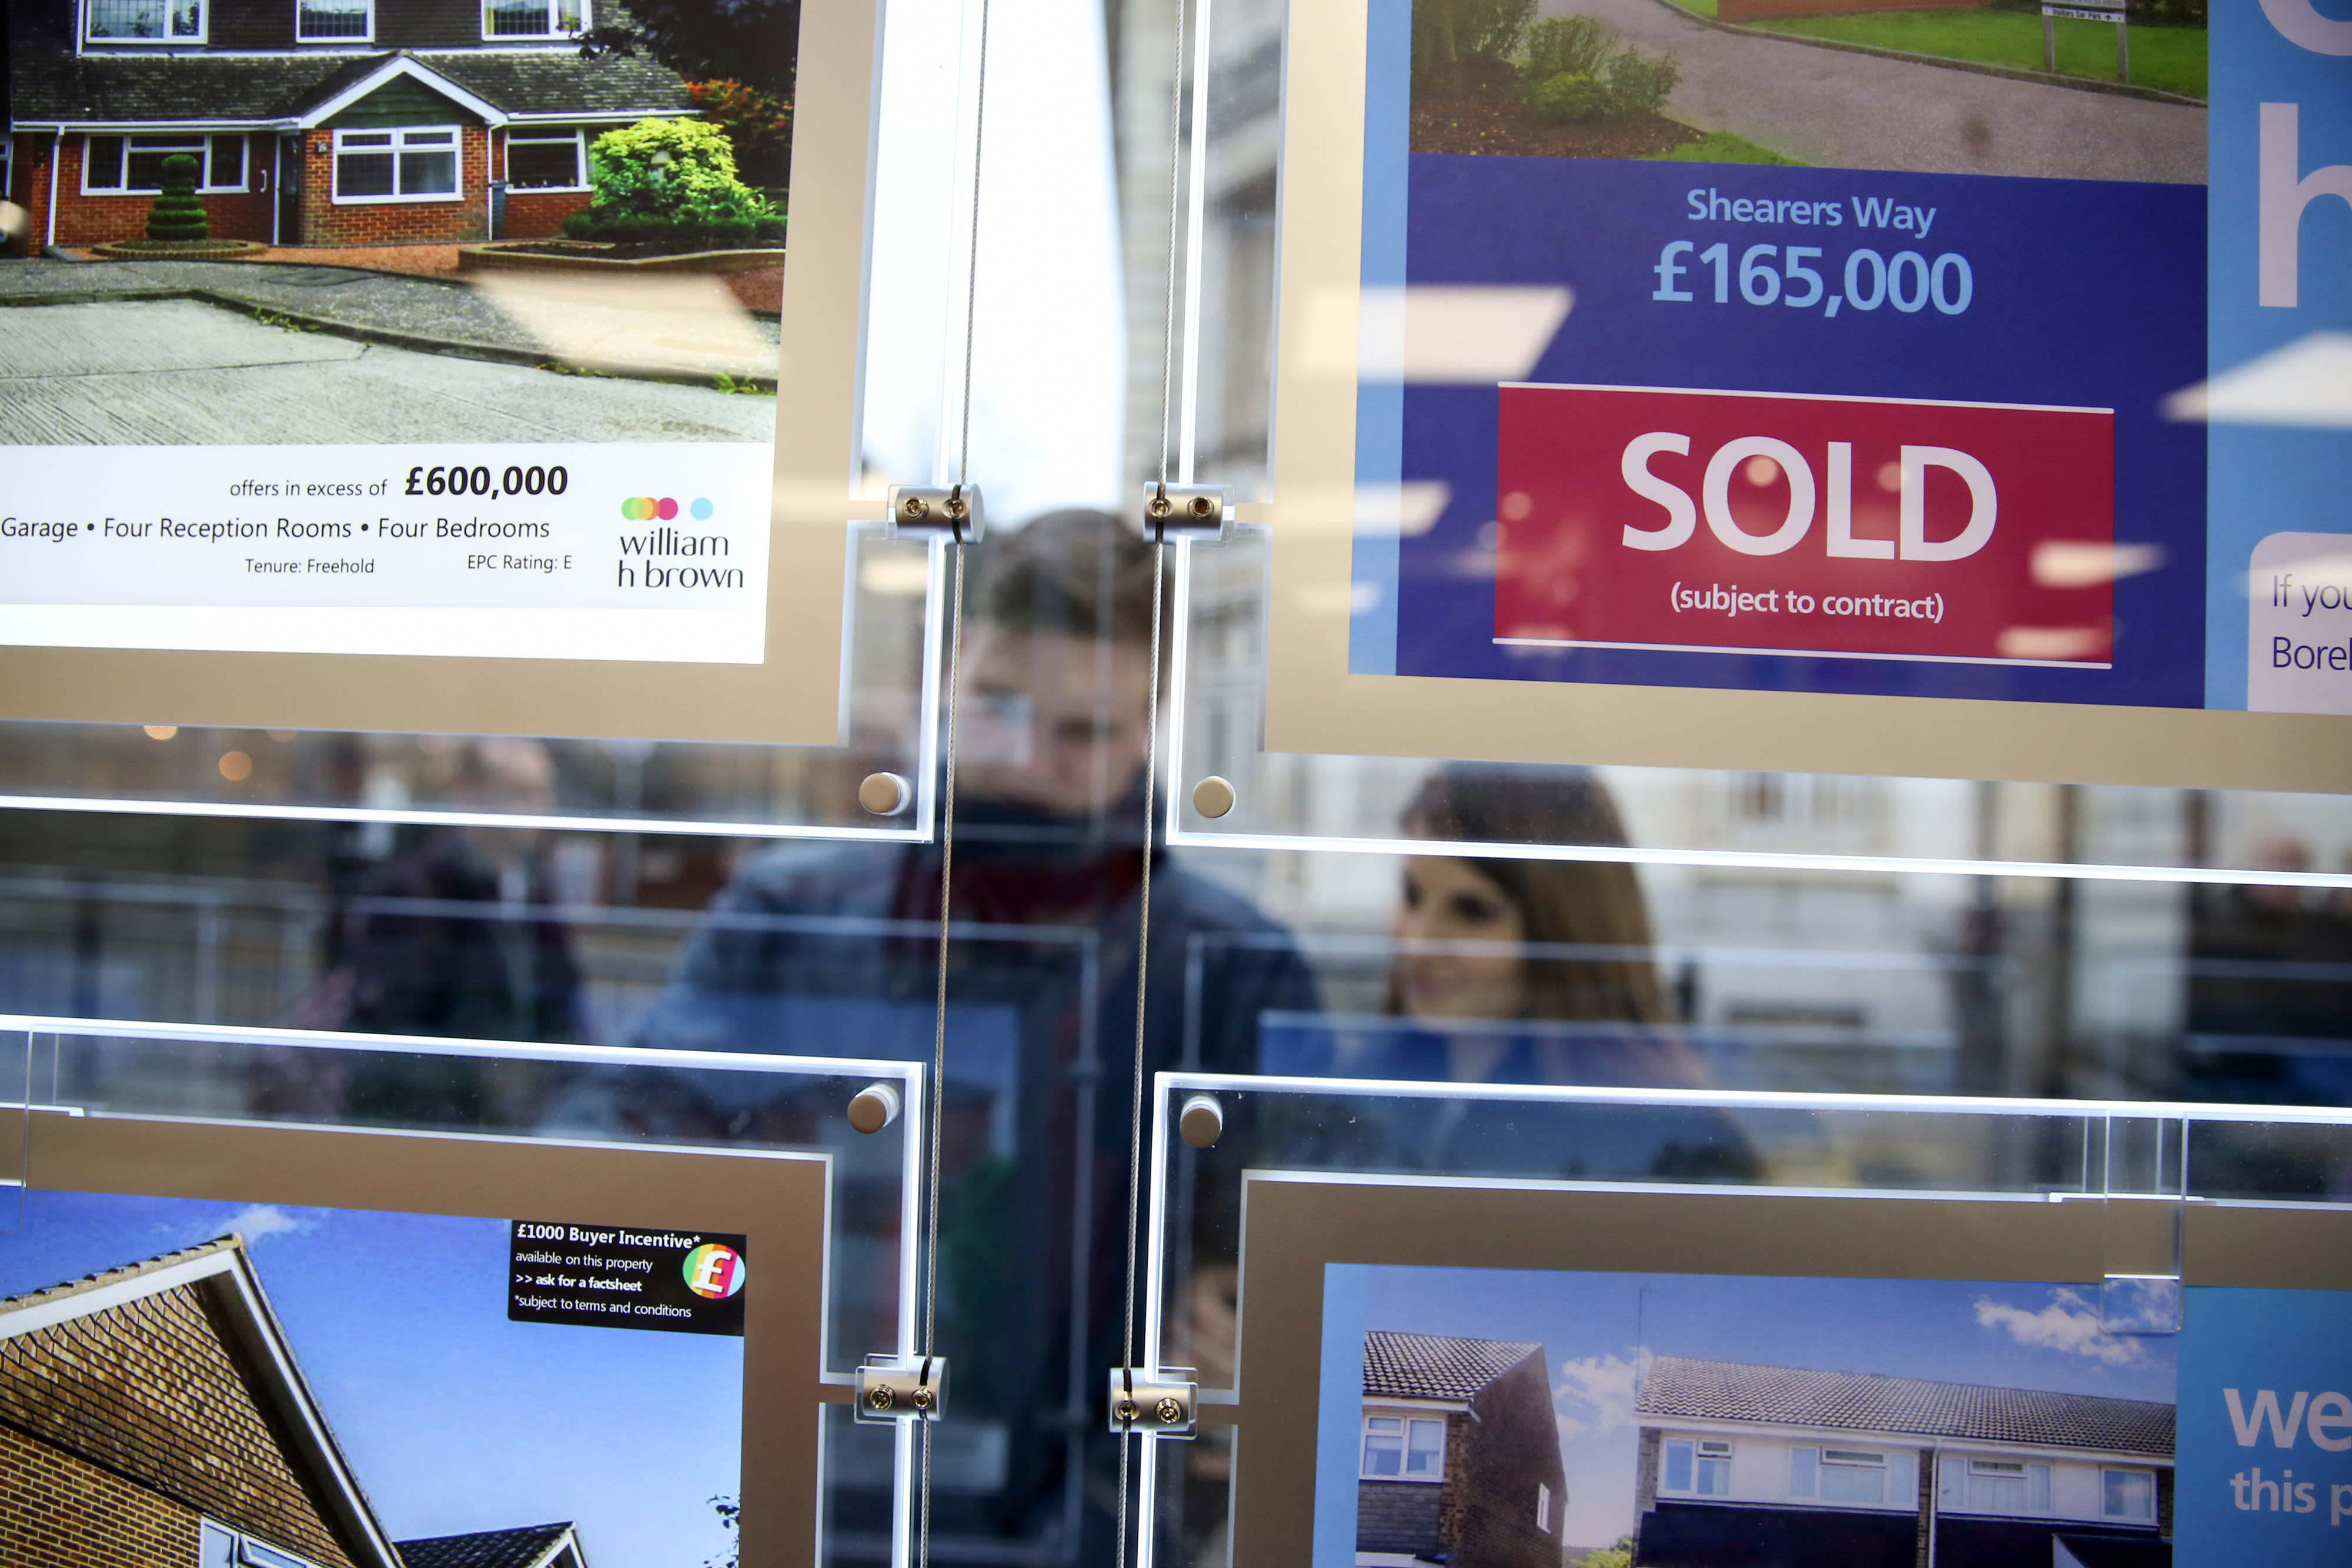 House prices to increase by 4% in 2019